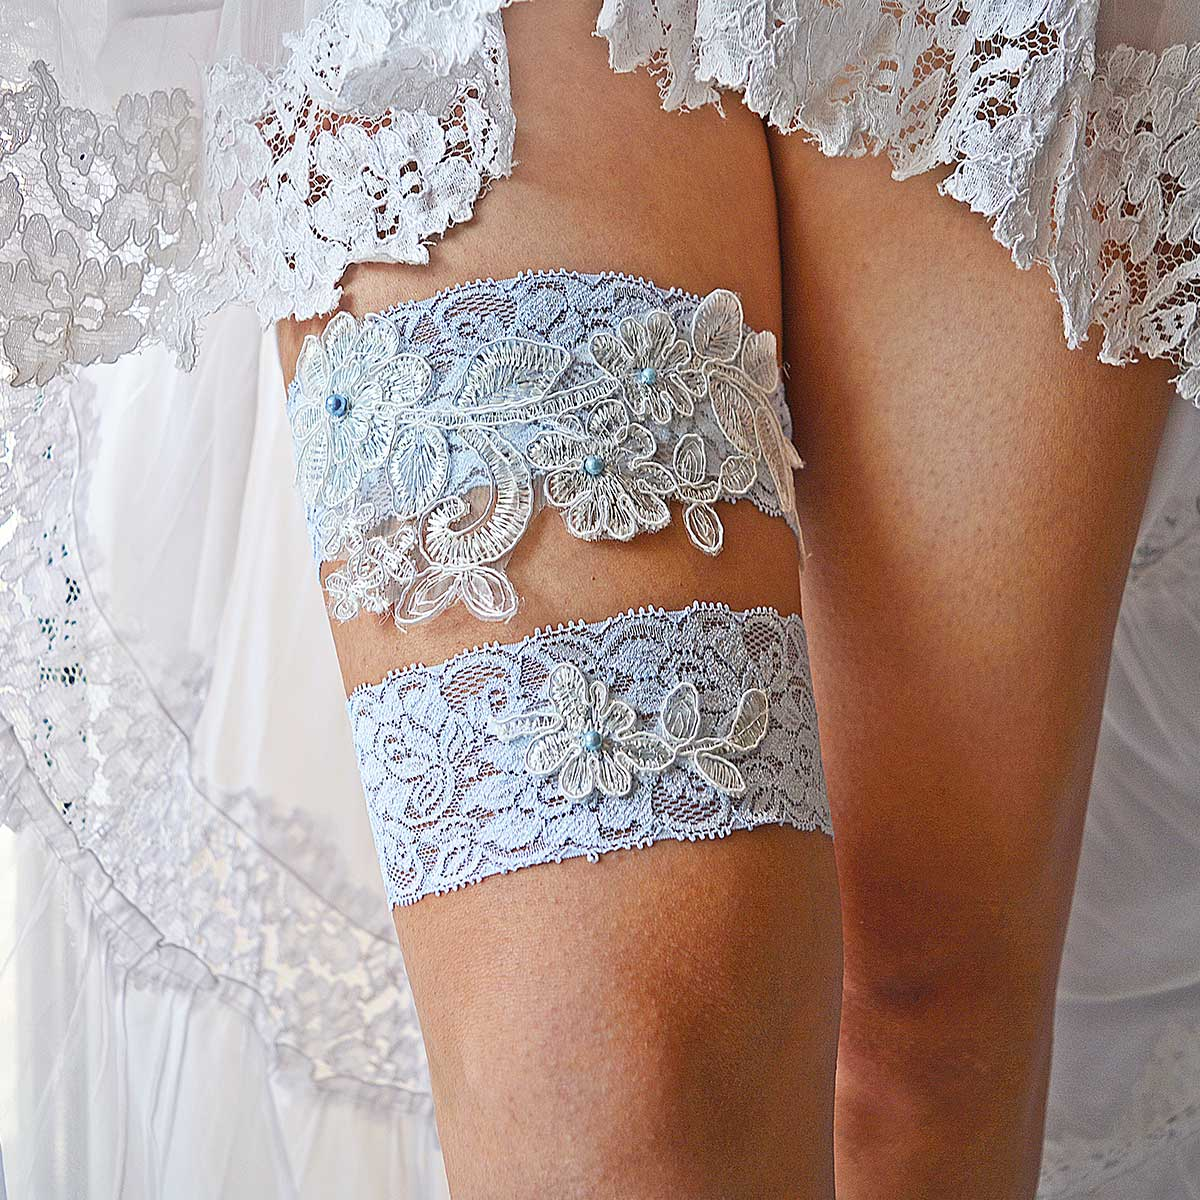 Pale Blue Bridal Garter With White Flower Applique & Pearls